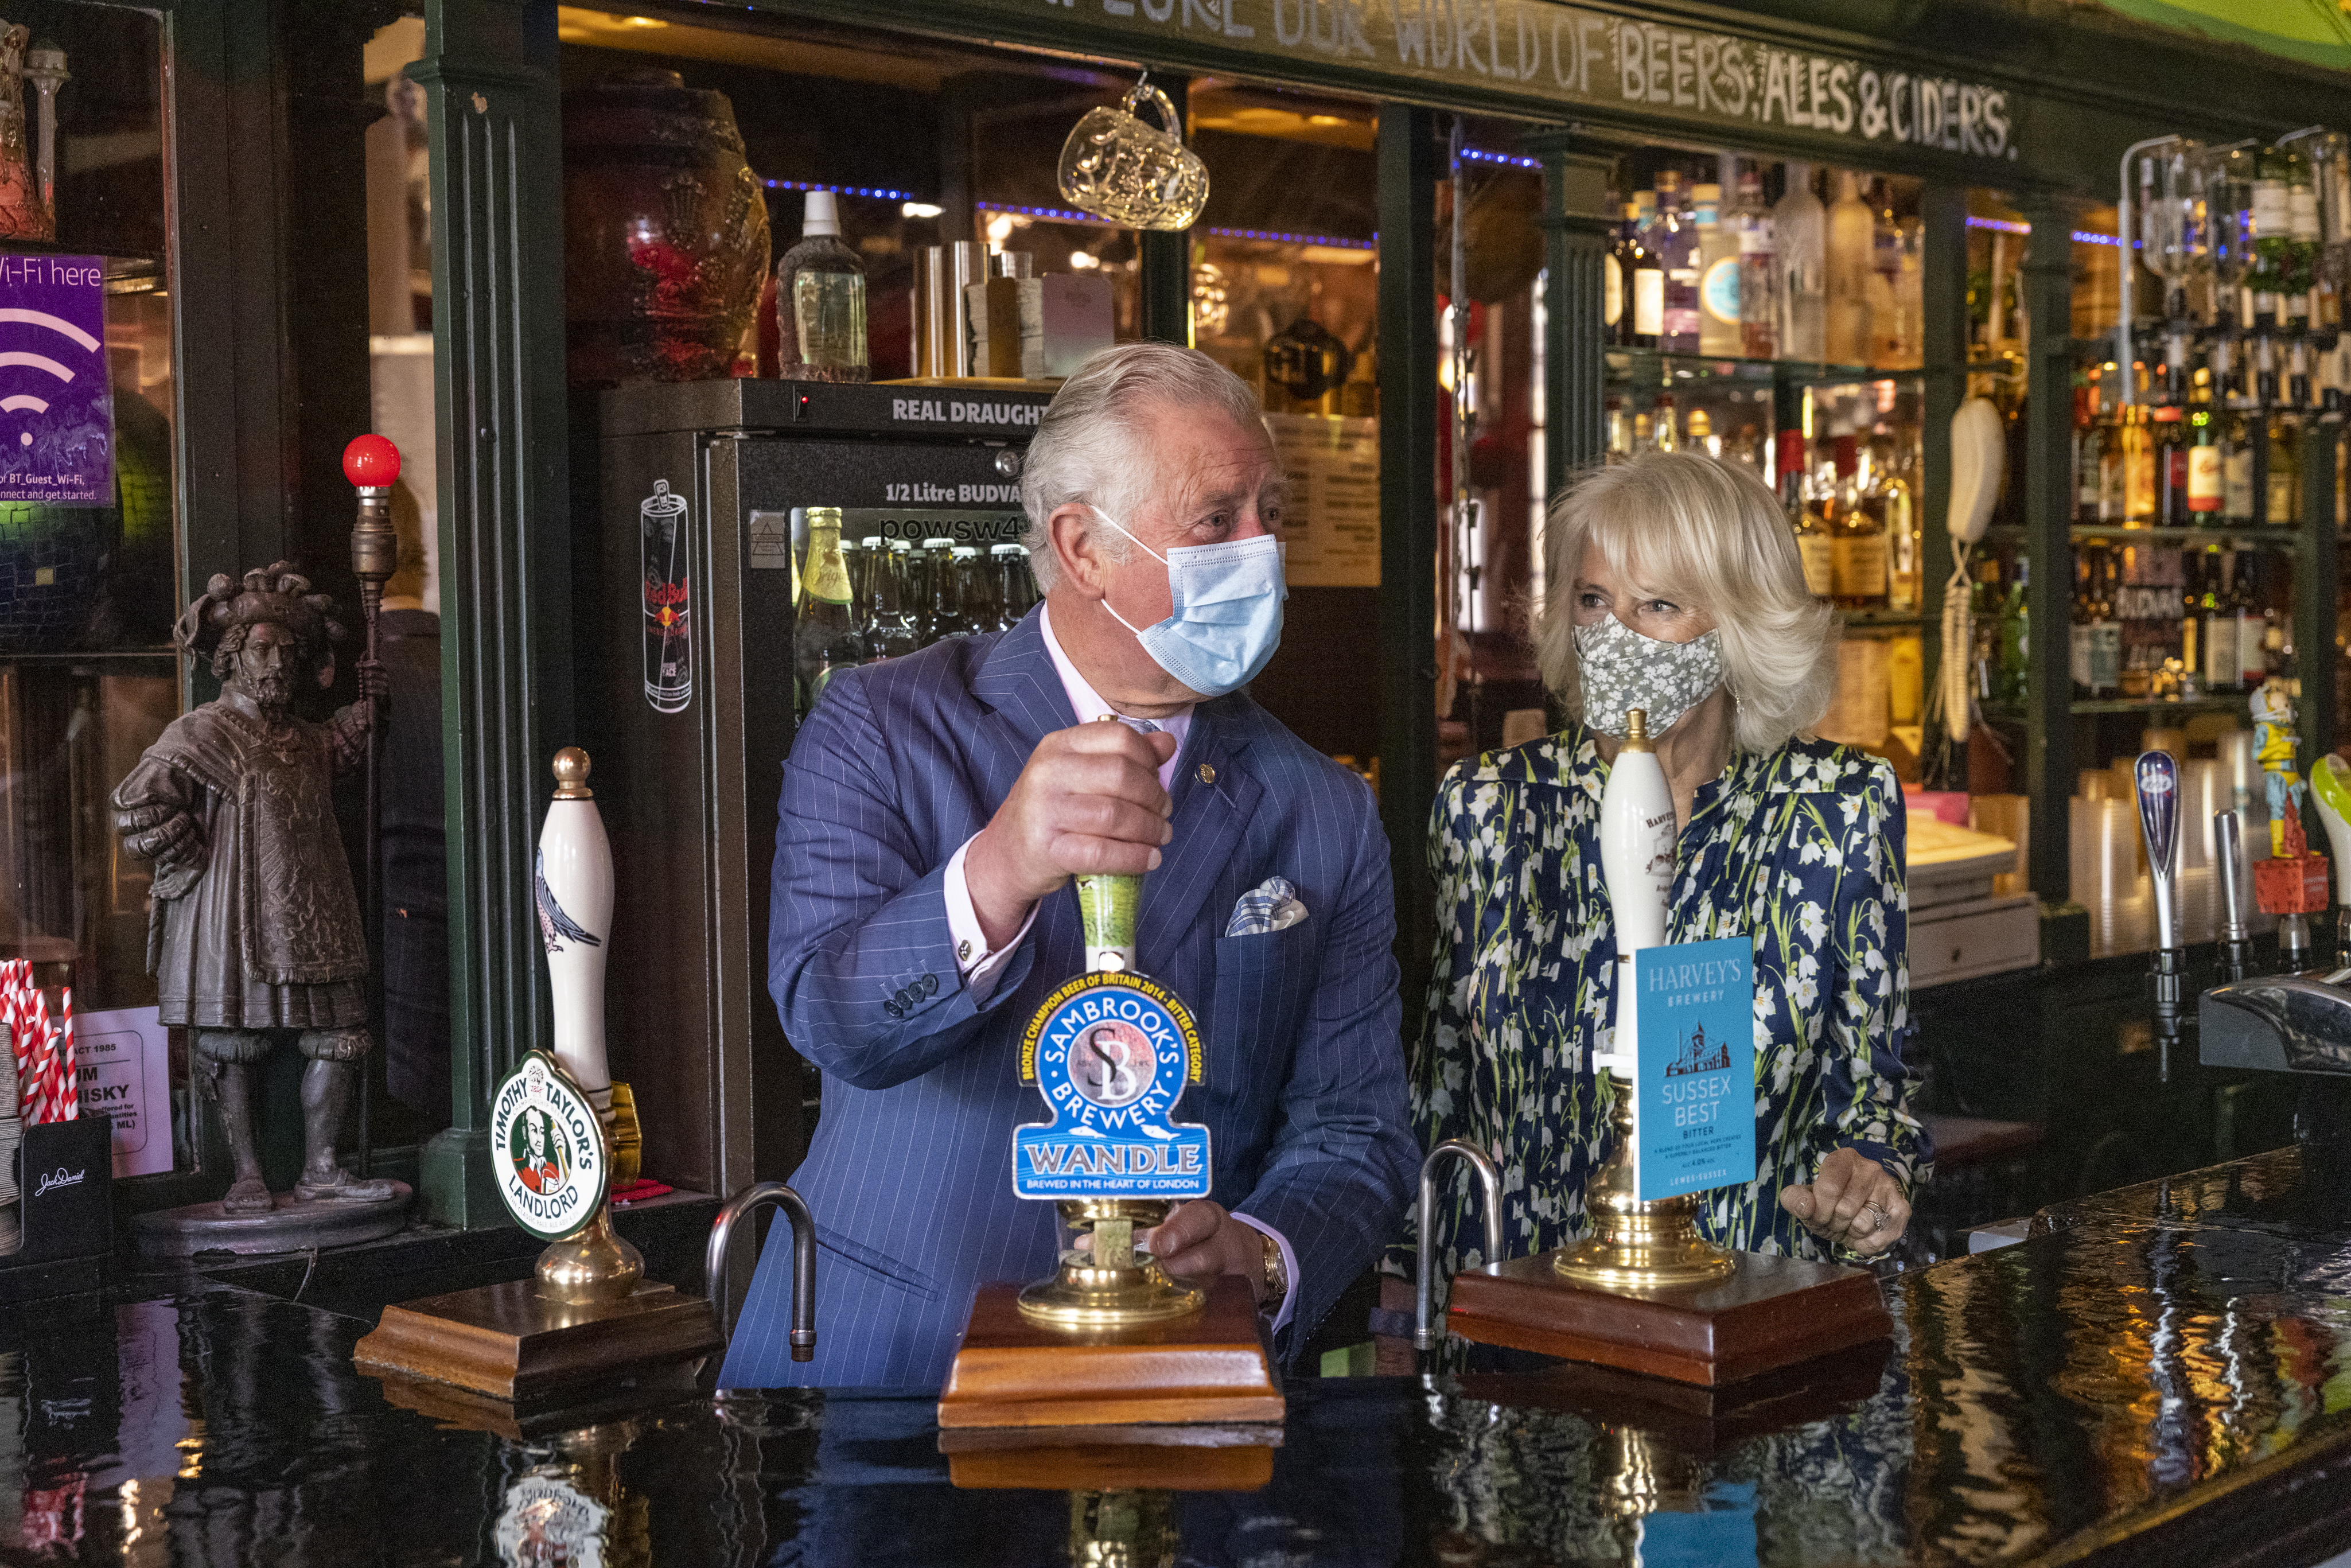 <p>The Duchess of Cornwall looks on as the Prince of Wales pours a pint in the Prince of Wales public house, during a visit to Clapham Old Town, south London, to celebrate the high street and retail sector as non-essential shops re-open and Coronavirus restrictions ease. Picture date: Thursday May 27, 2021.</p>